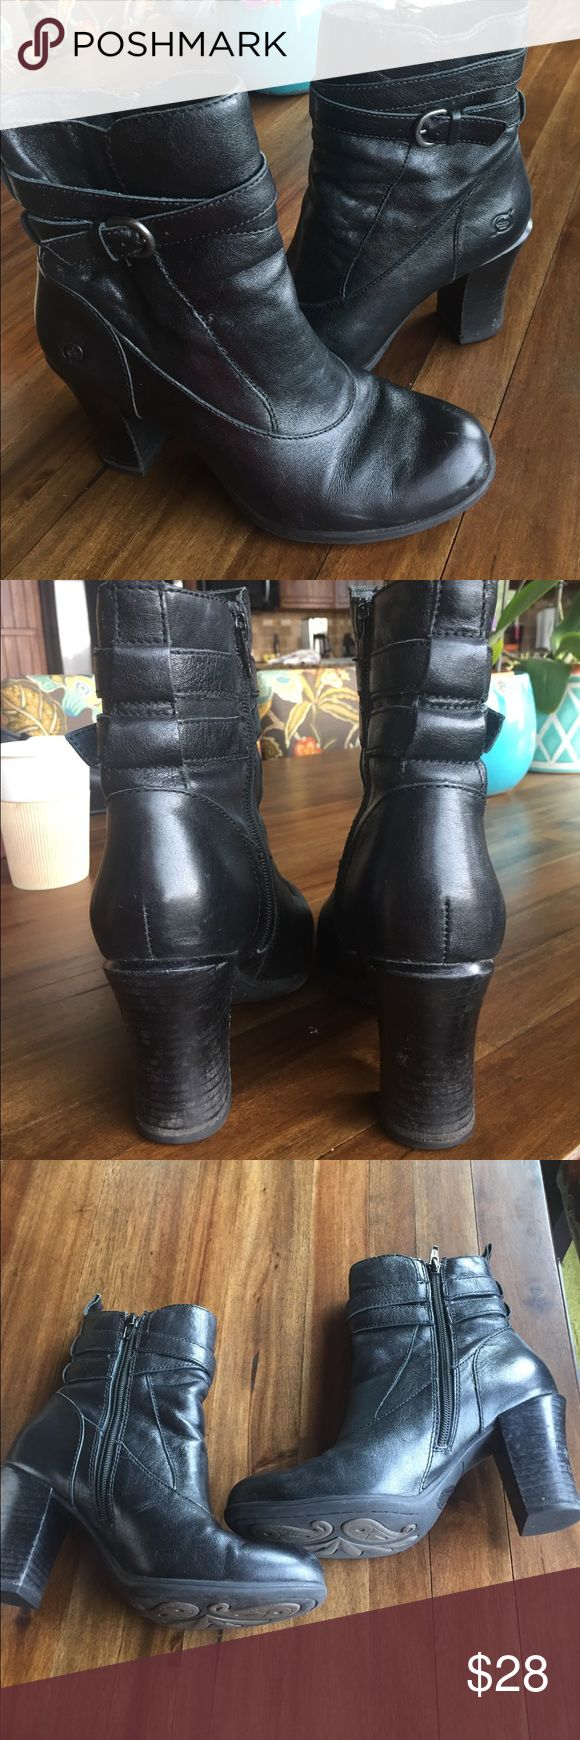 """Born black leather boots with stack heel Cute comfortable black leather Born boots, 3.2"""" heel, wrapped leather strap with buckle, with great born sole. These boots are used with some scuffs/scratches as shown in the pictures. Born Shoes Heeled Boots"""